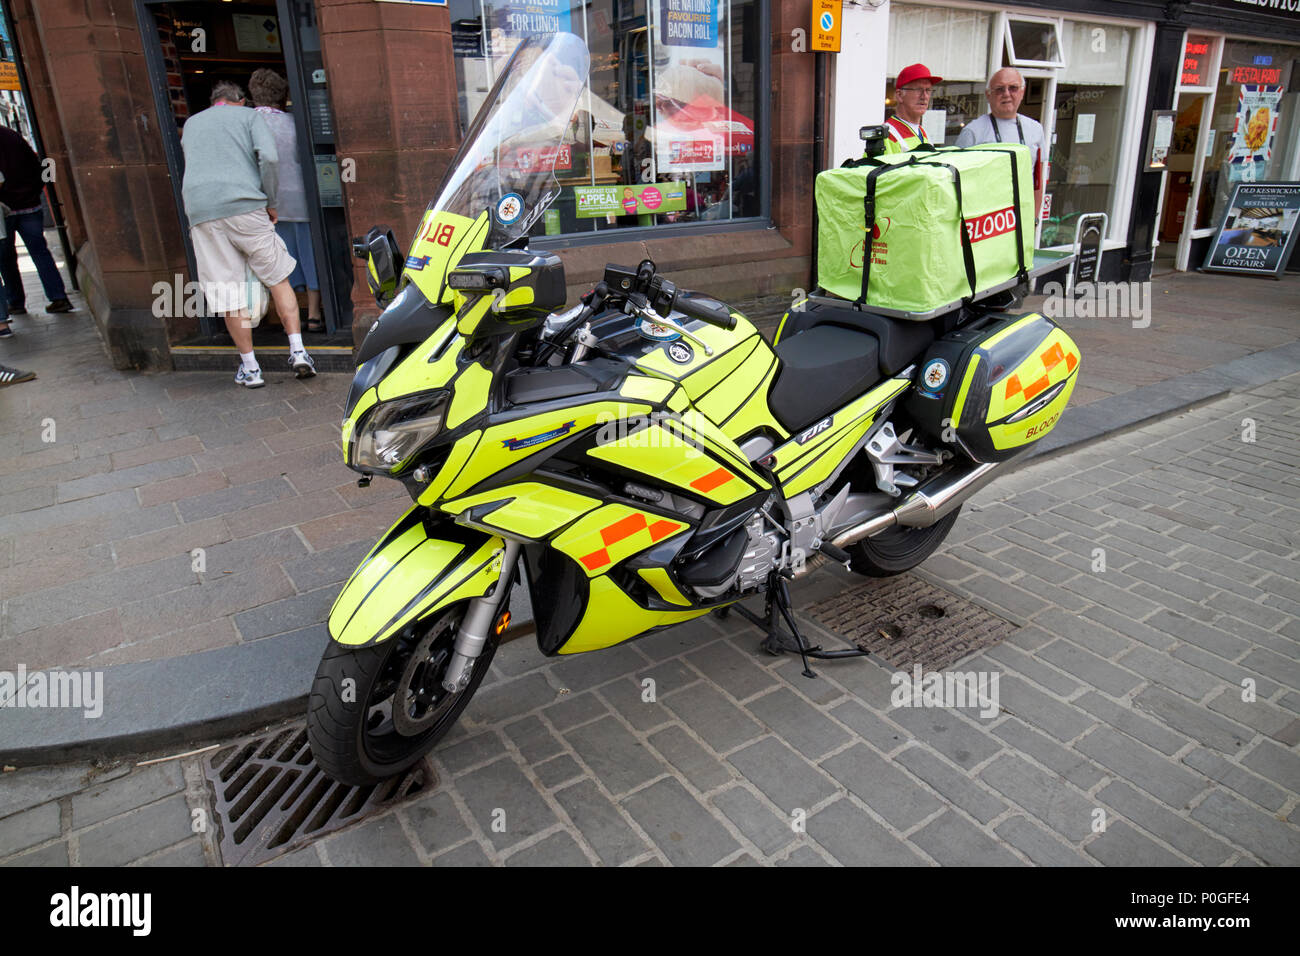 Yamaha FJR emergency blood delivery bike Keswick Cumbria England UK - Stock Image